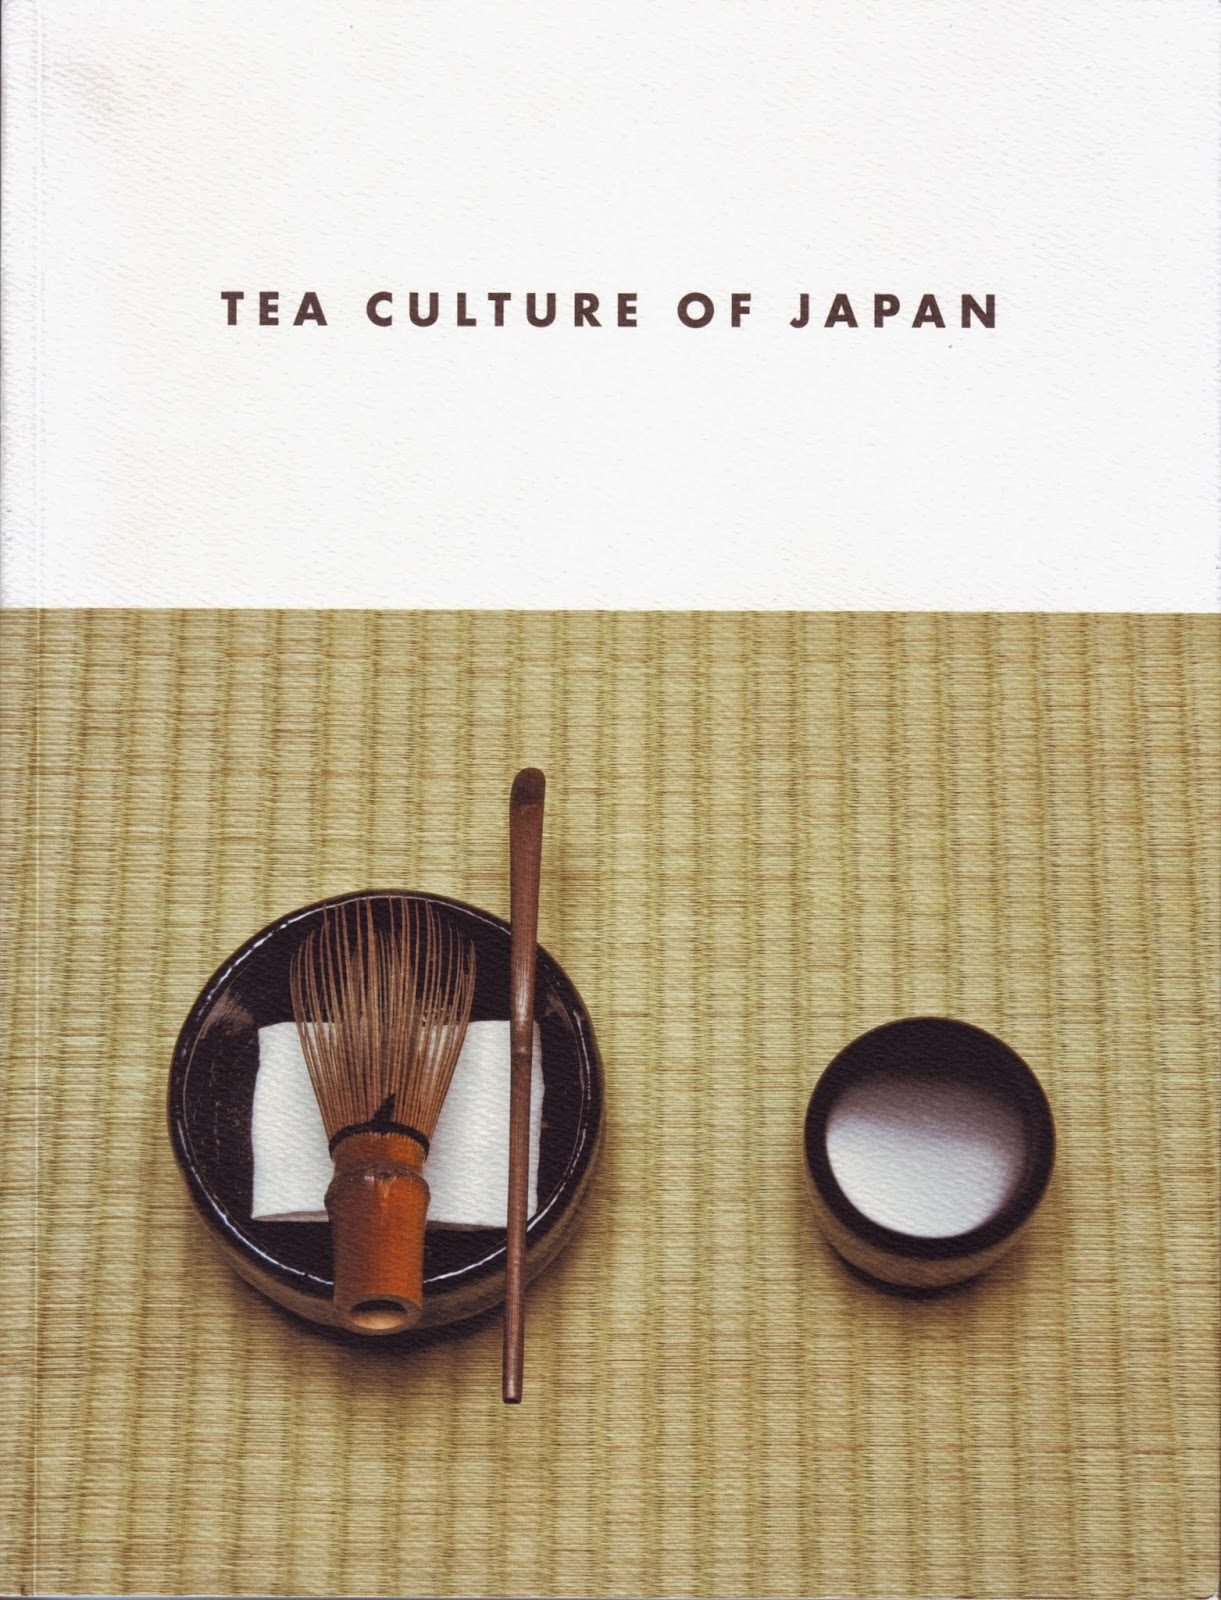 book tea culture of japan at Yale university art gallery